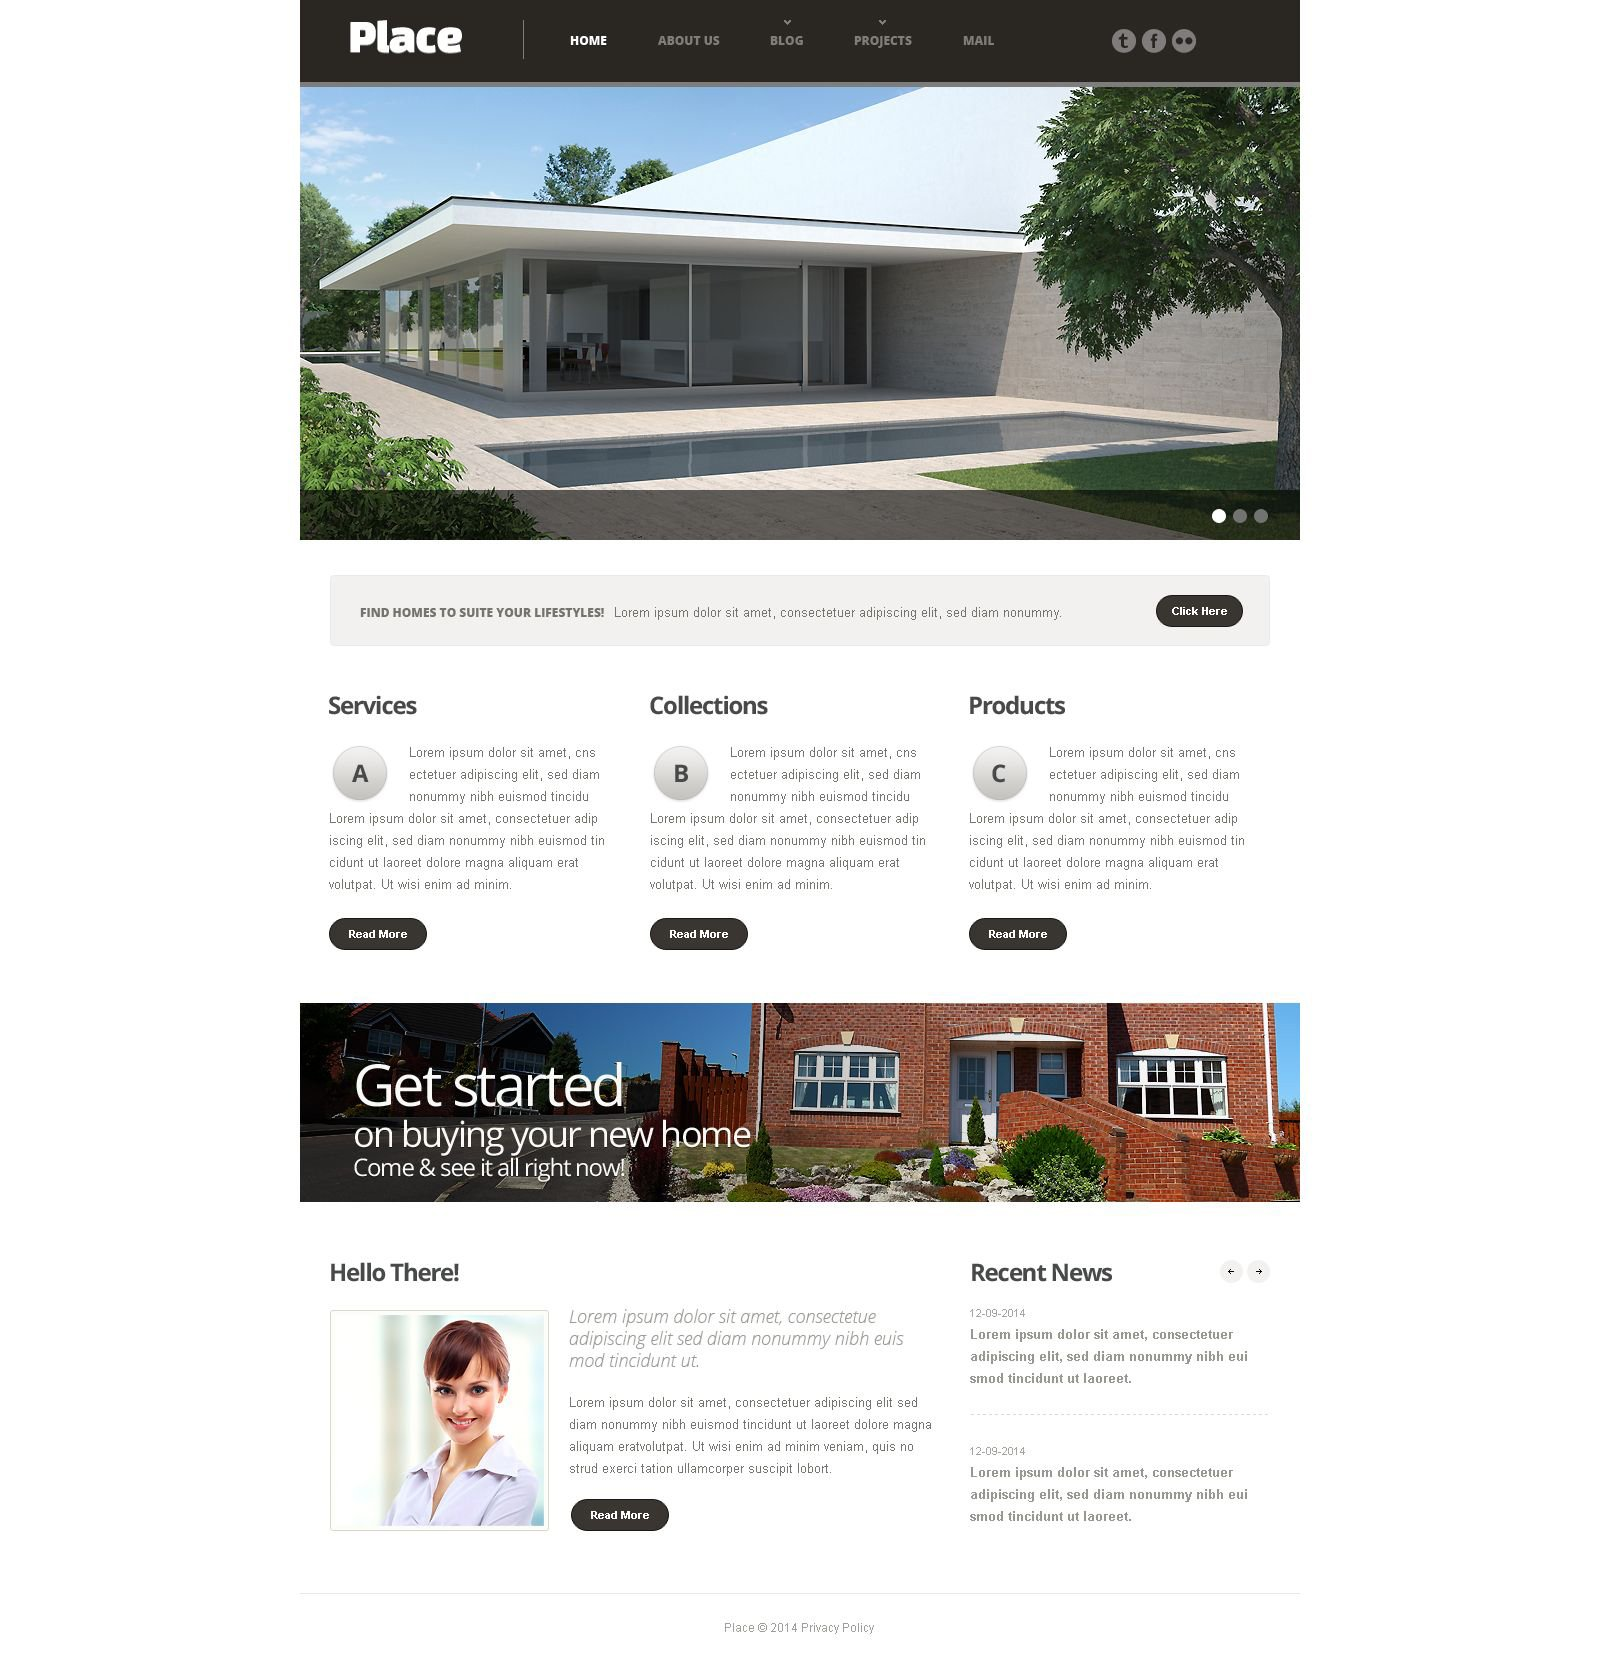 The Place Real Estate Agency Responsive Javascript Animated Design 54012, one of the best website templates of its kind (real estate, most popular), also known as place real estate agency website template, services website template, house website template, home website template, apartment website template, buildings website template, finance website template, loan website template, sales website template, rentals website template, management website template, search website template, team website template, money website template, foreclosure website template, estimator website template, investment website template, development website template, constructions website template, architecture website template, engineering website template, apartment website template, sale website template, rent website template, architecture website template, broker website template, lots and related with place real estate agency, services, house, home, apartment, buildings, finance, loan, sales, rentals, management, search, team, money, foreclosure, estimator, investment, development, constructions, architecture, engineering, apartment, sale, rent, architecture, broker, lots, etc.